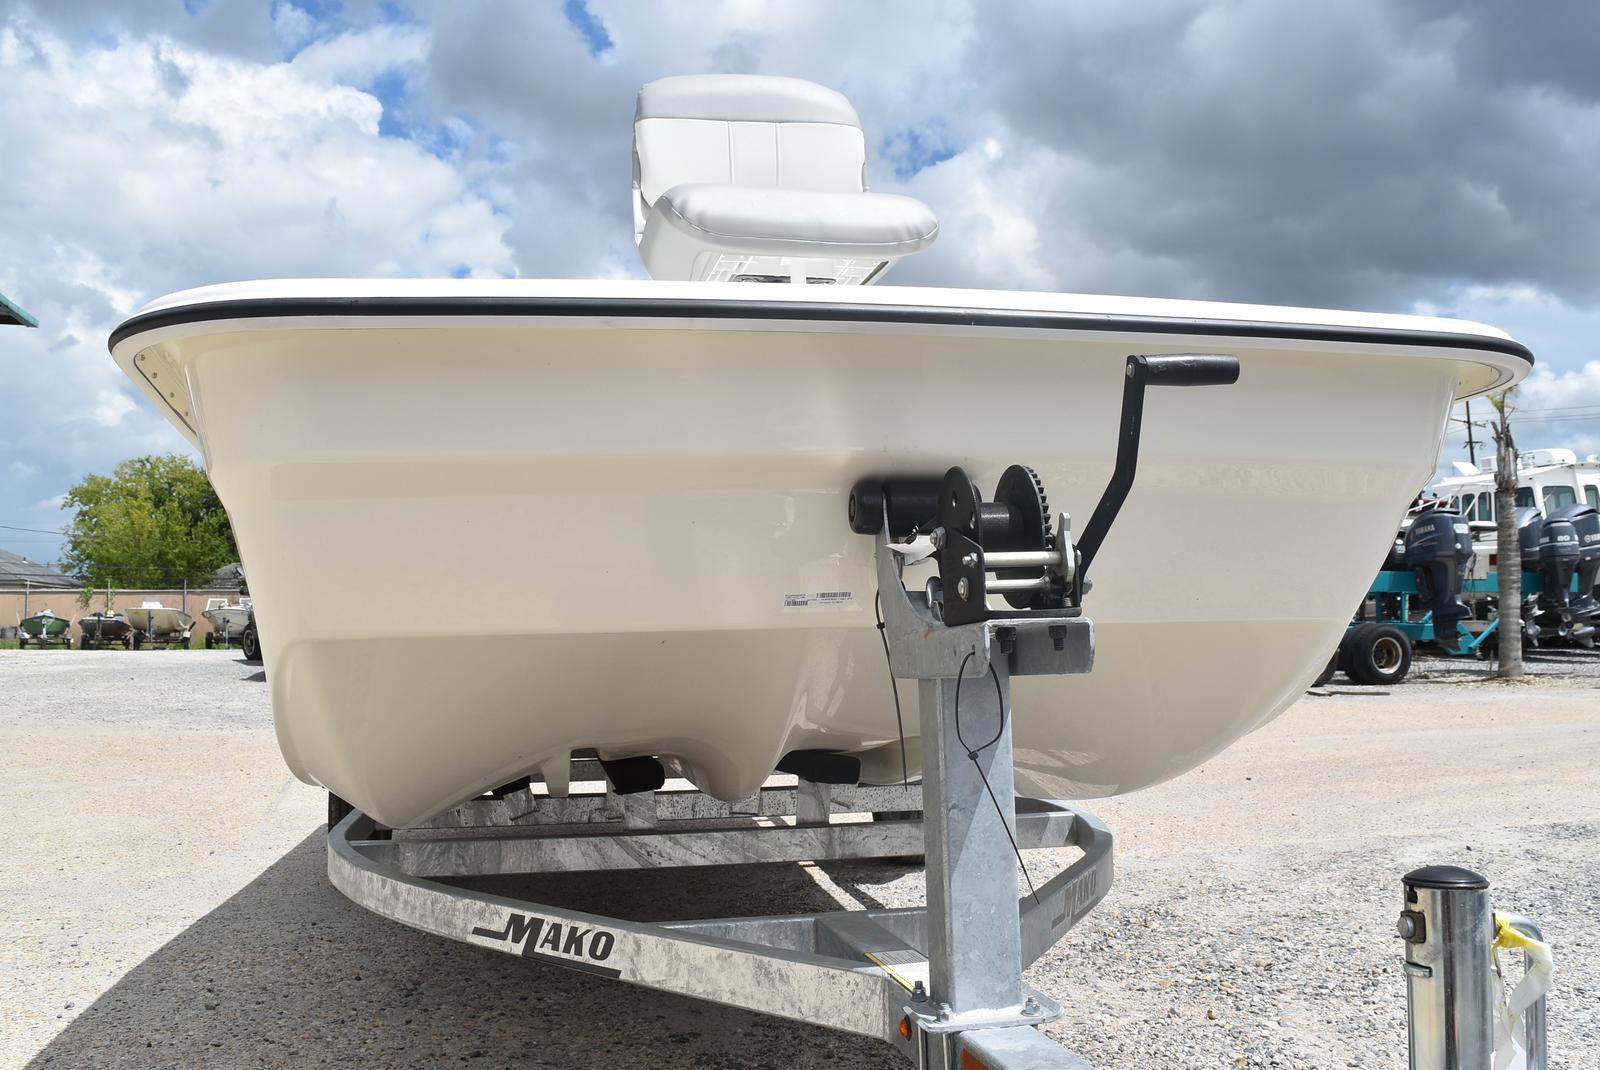 2020 Mako boat for sale, model of the boat is Pro Skiff 17, 75 ELPT & Image # 378 of 702